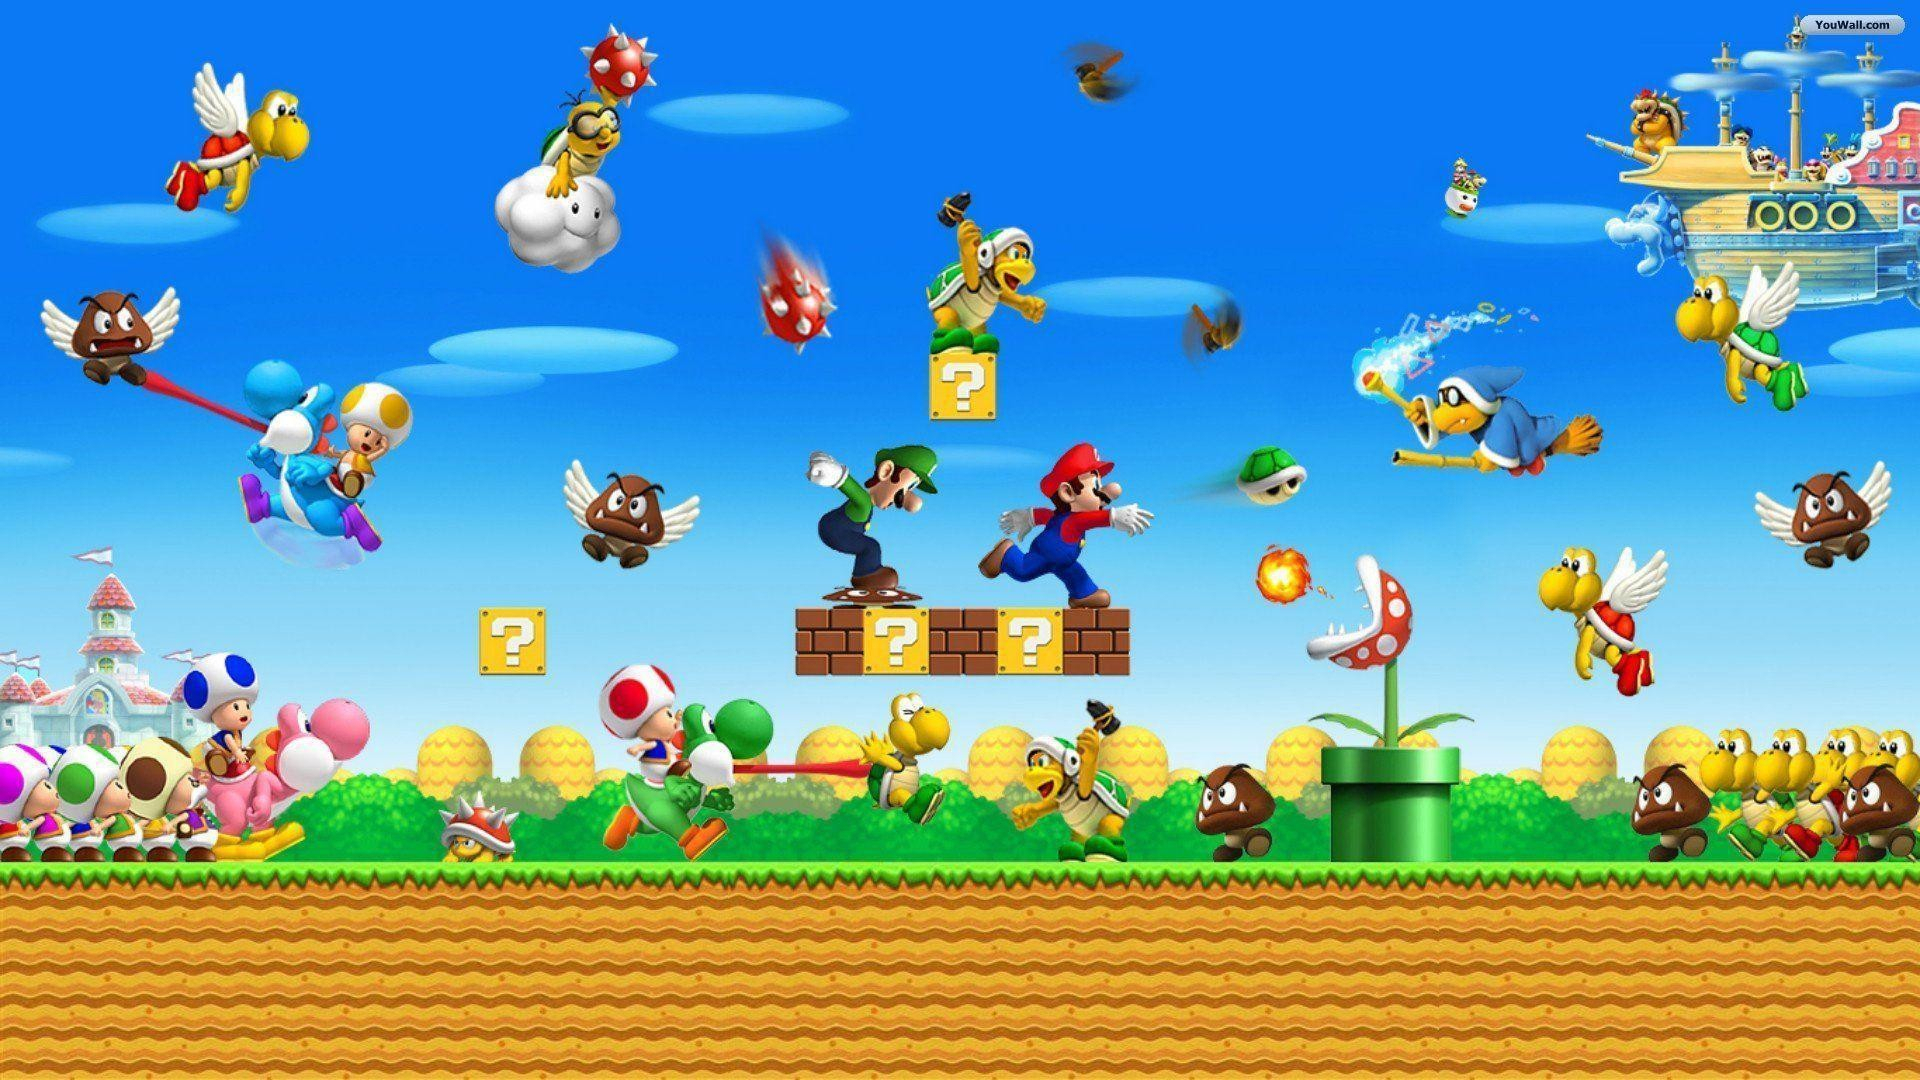 64+ mario world wallpapers on wallpaperplay